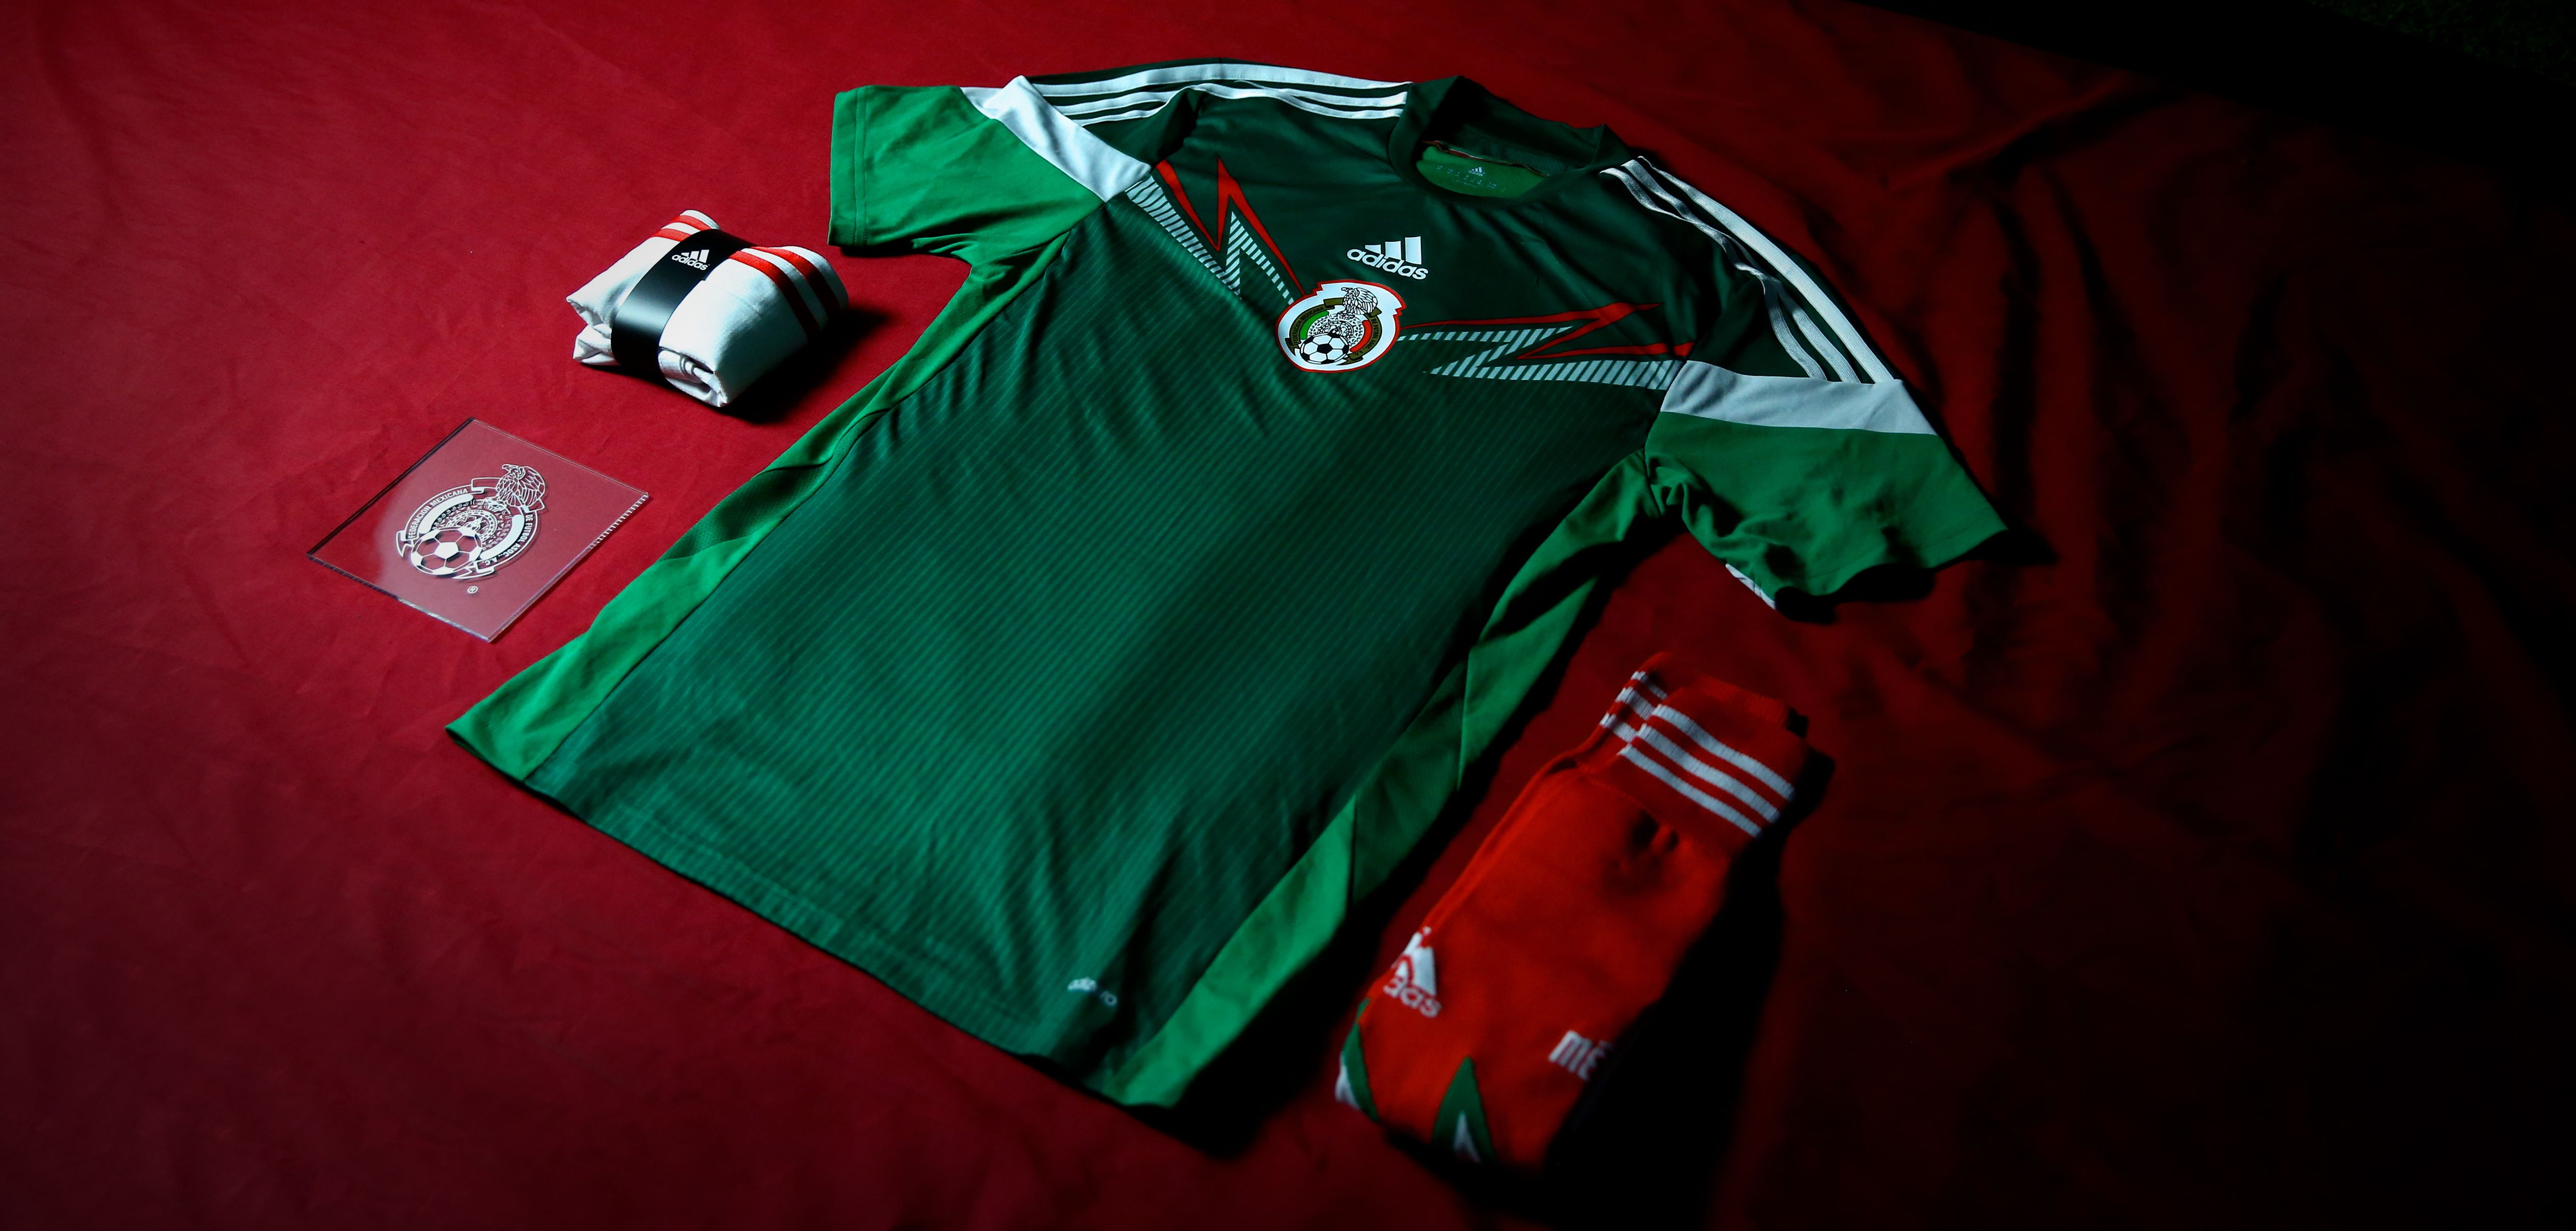 02ec03f98b0 The new Mexico jersey features a green base to form a unique design and the  elegant white touches on the chest and sleeves add to the jersey s overall  look